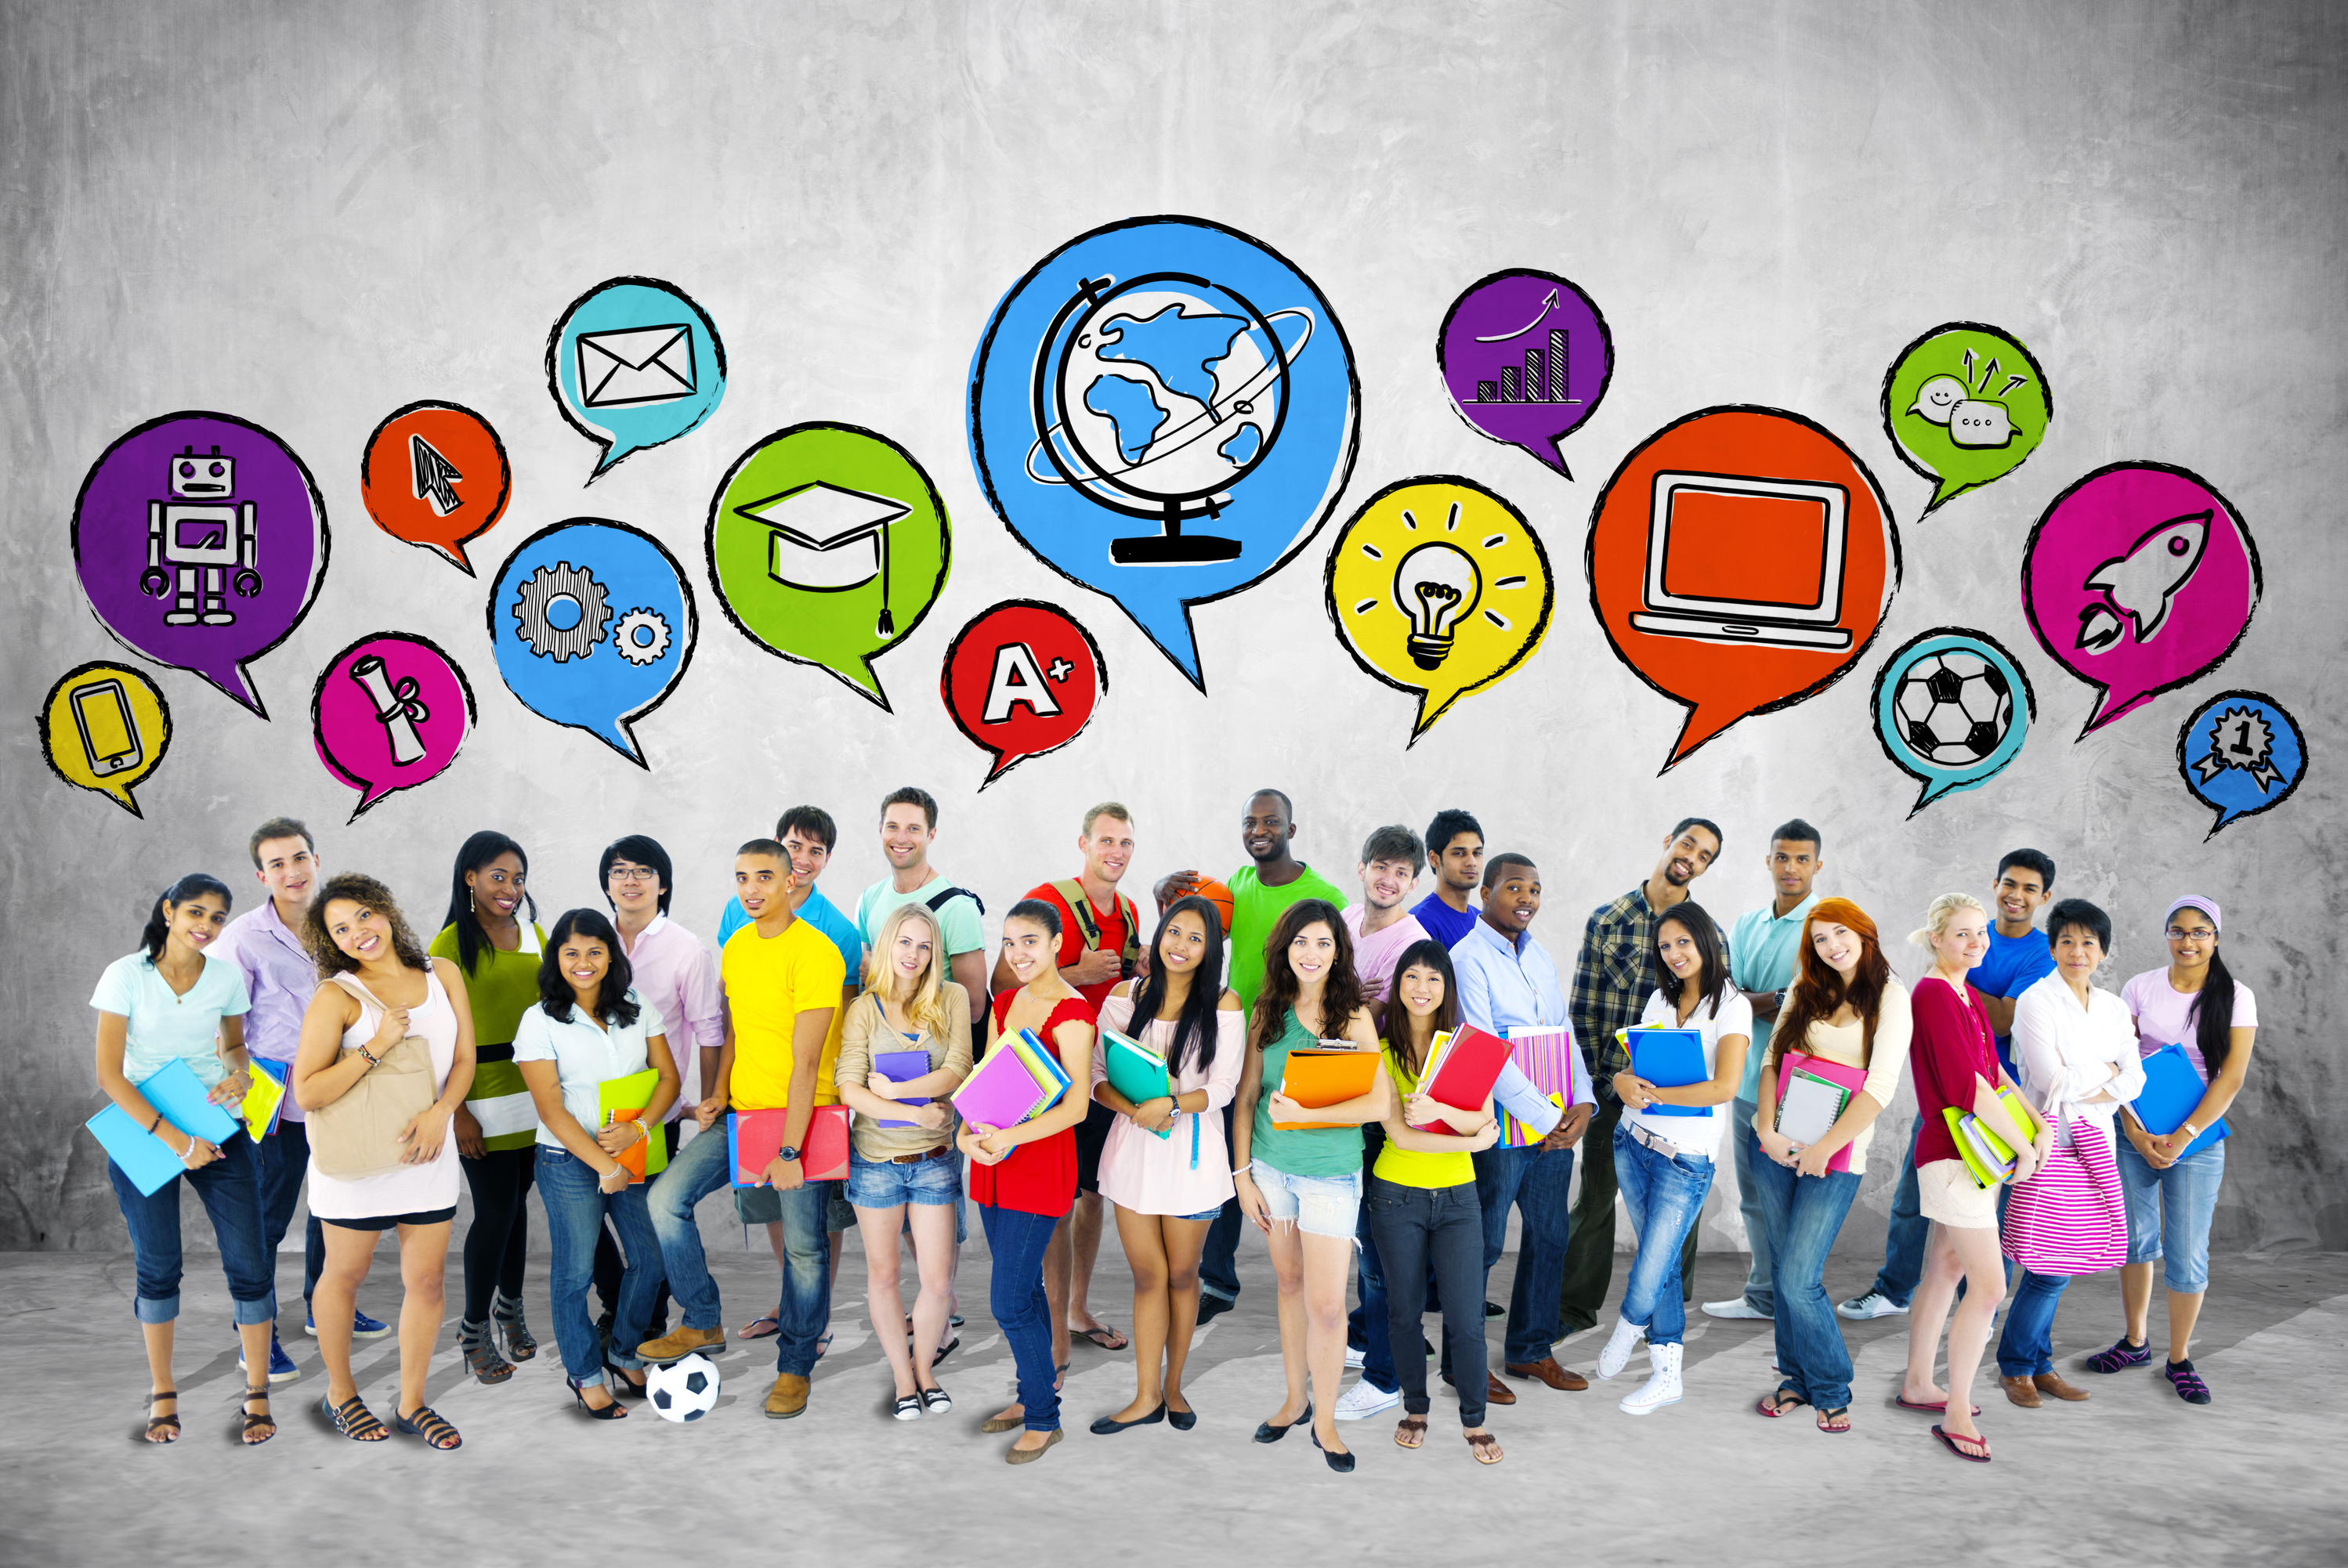 Group of Students with Speech Bubble